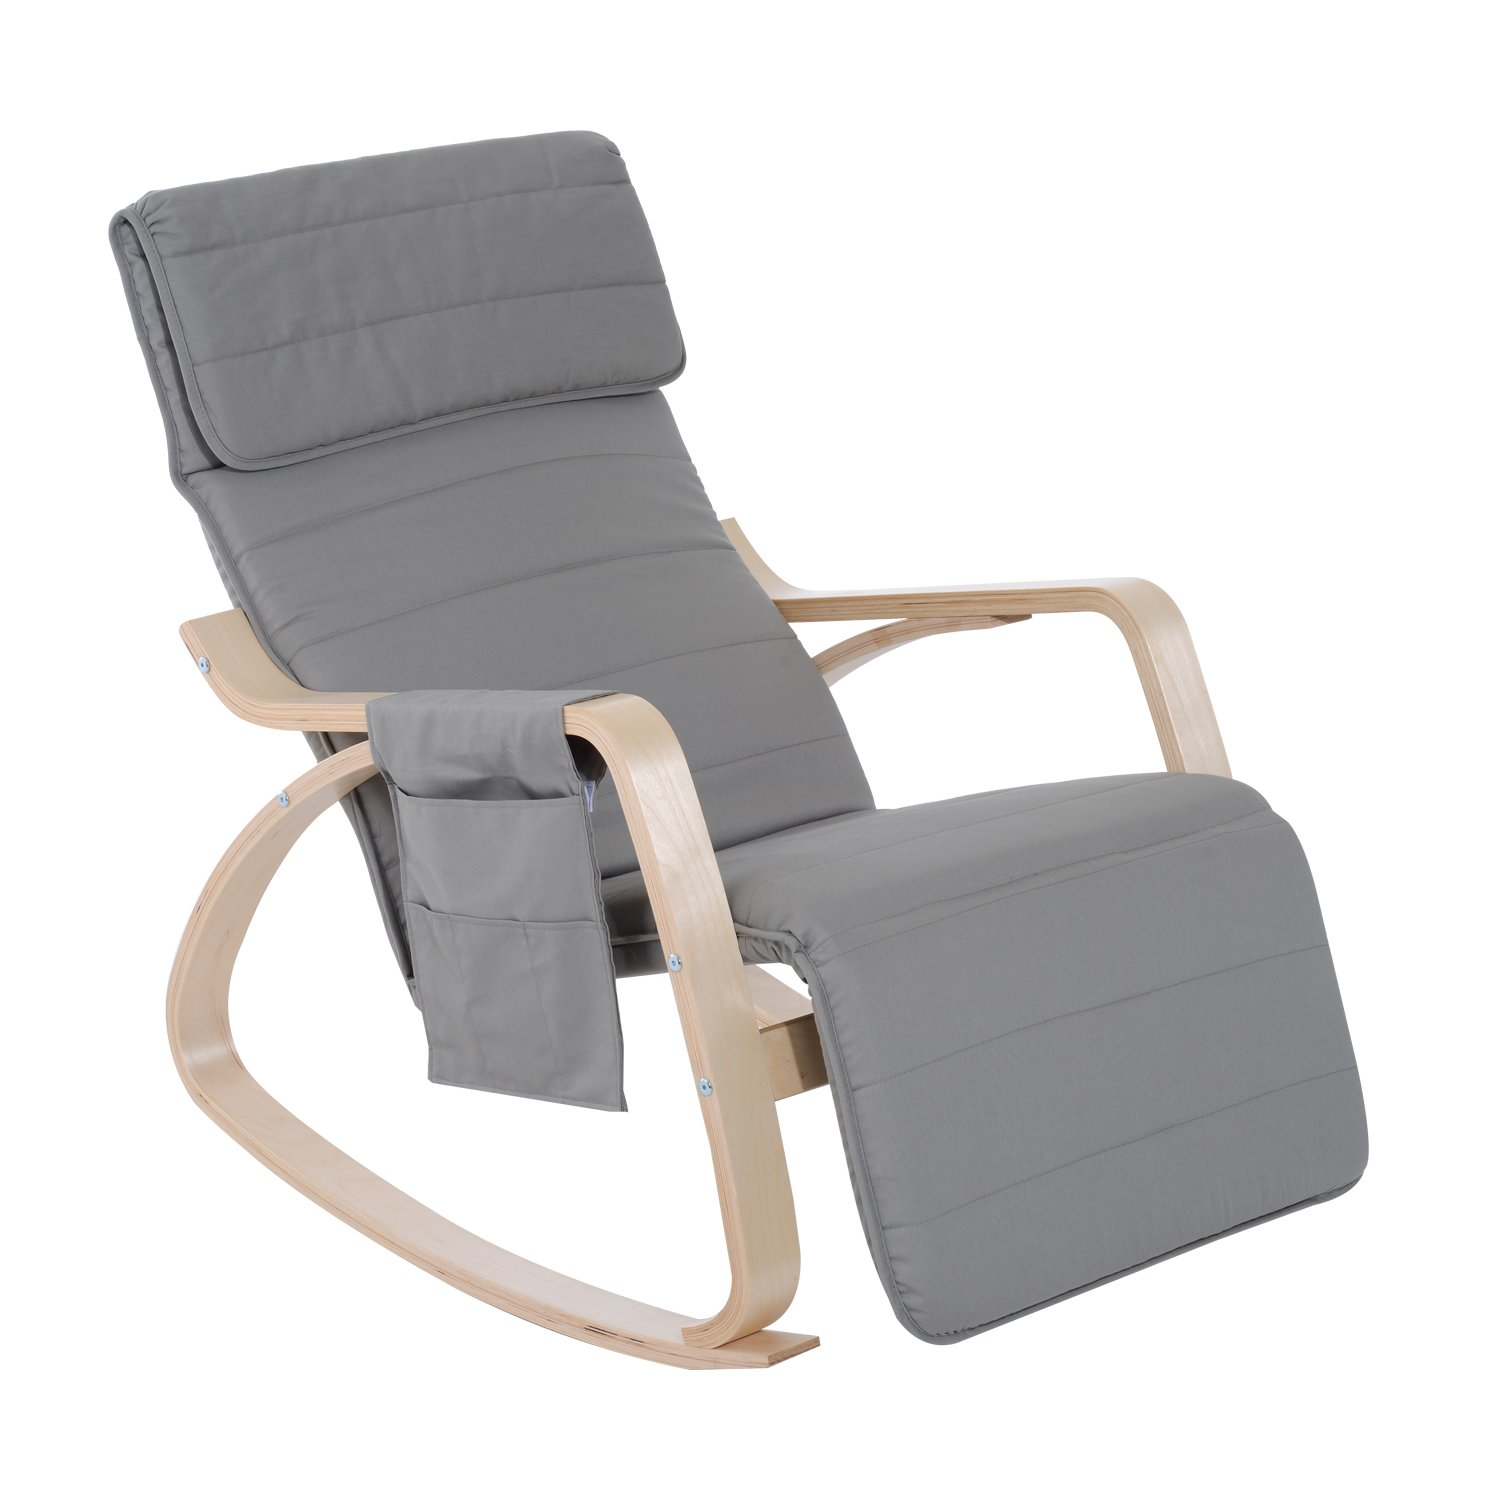 SoBuy New Relax Rocking Chair Lounge Chair with Adjustable